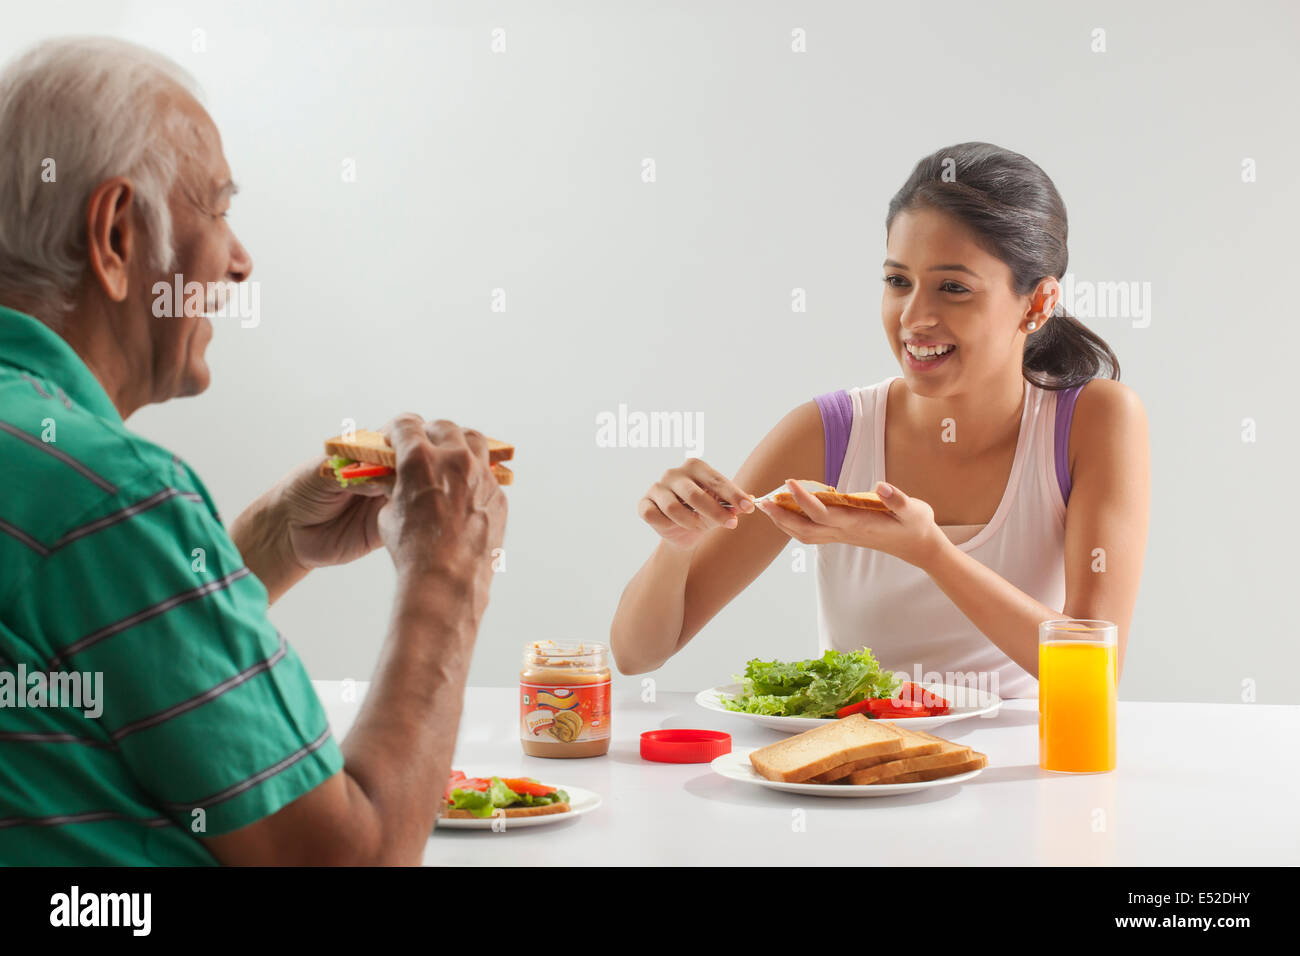 Grandfather and granddaughter eating breakfast - Stock Image